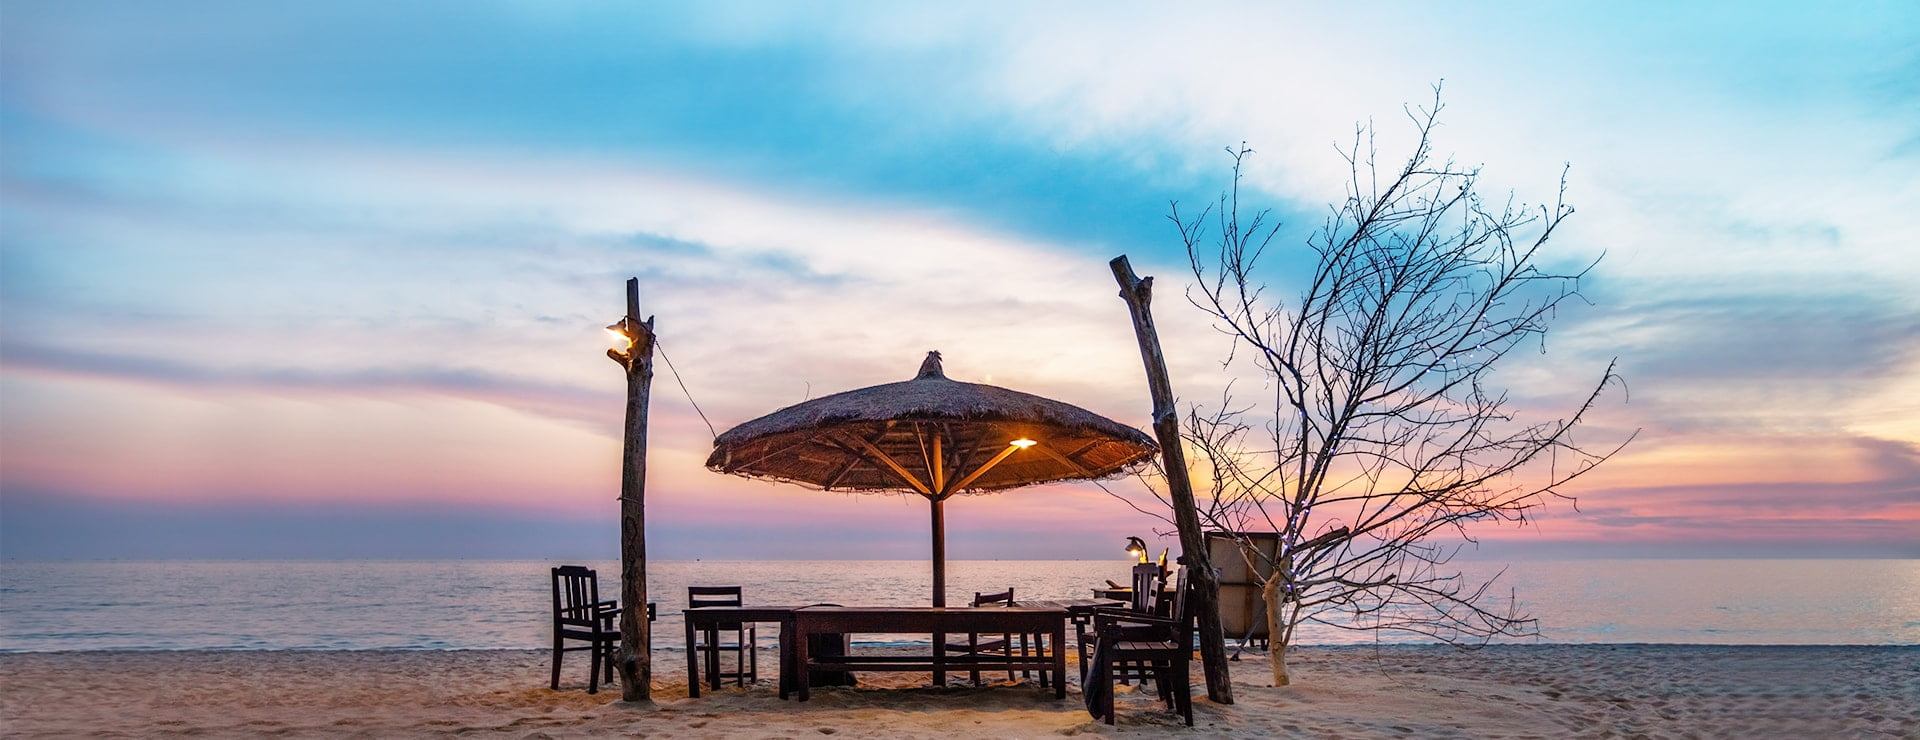 Activities that let you fully explore Phu Quoc, Vietnam